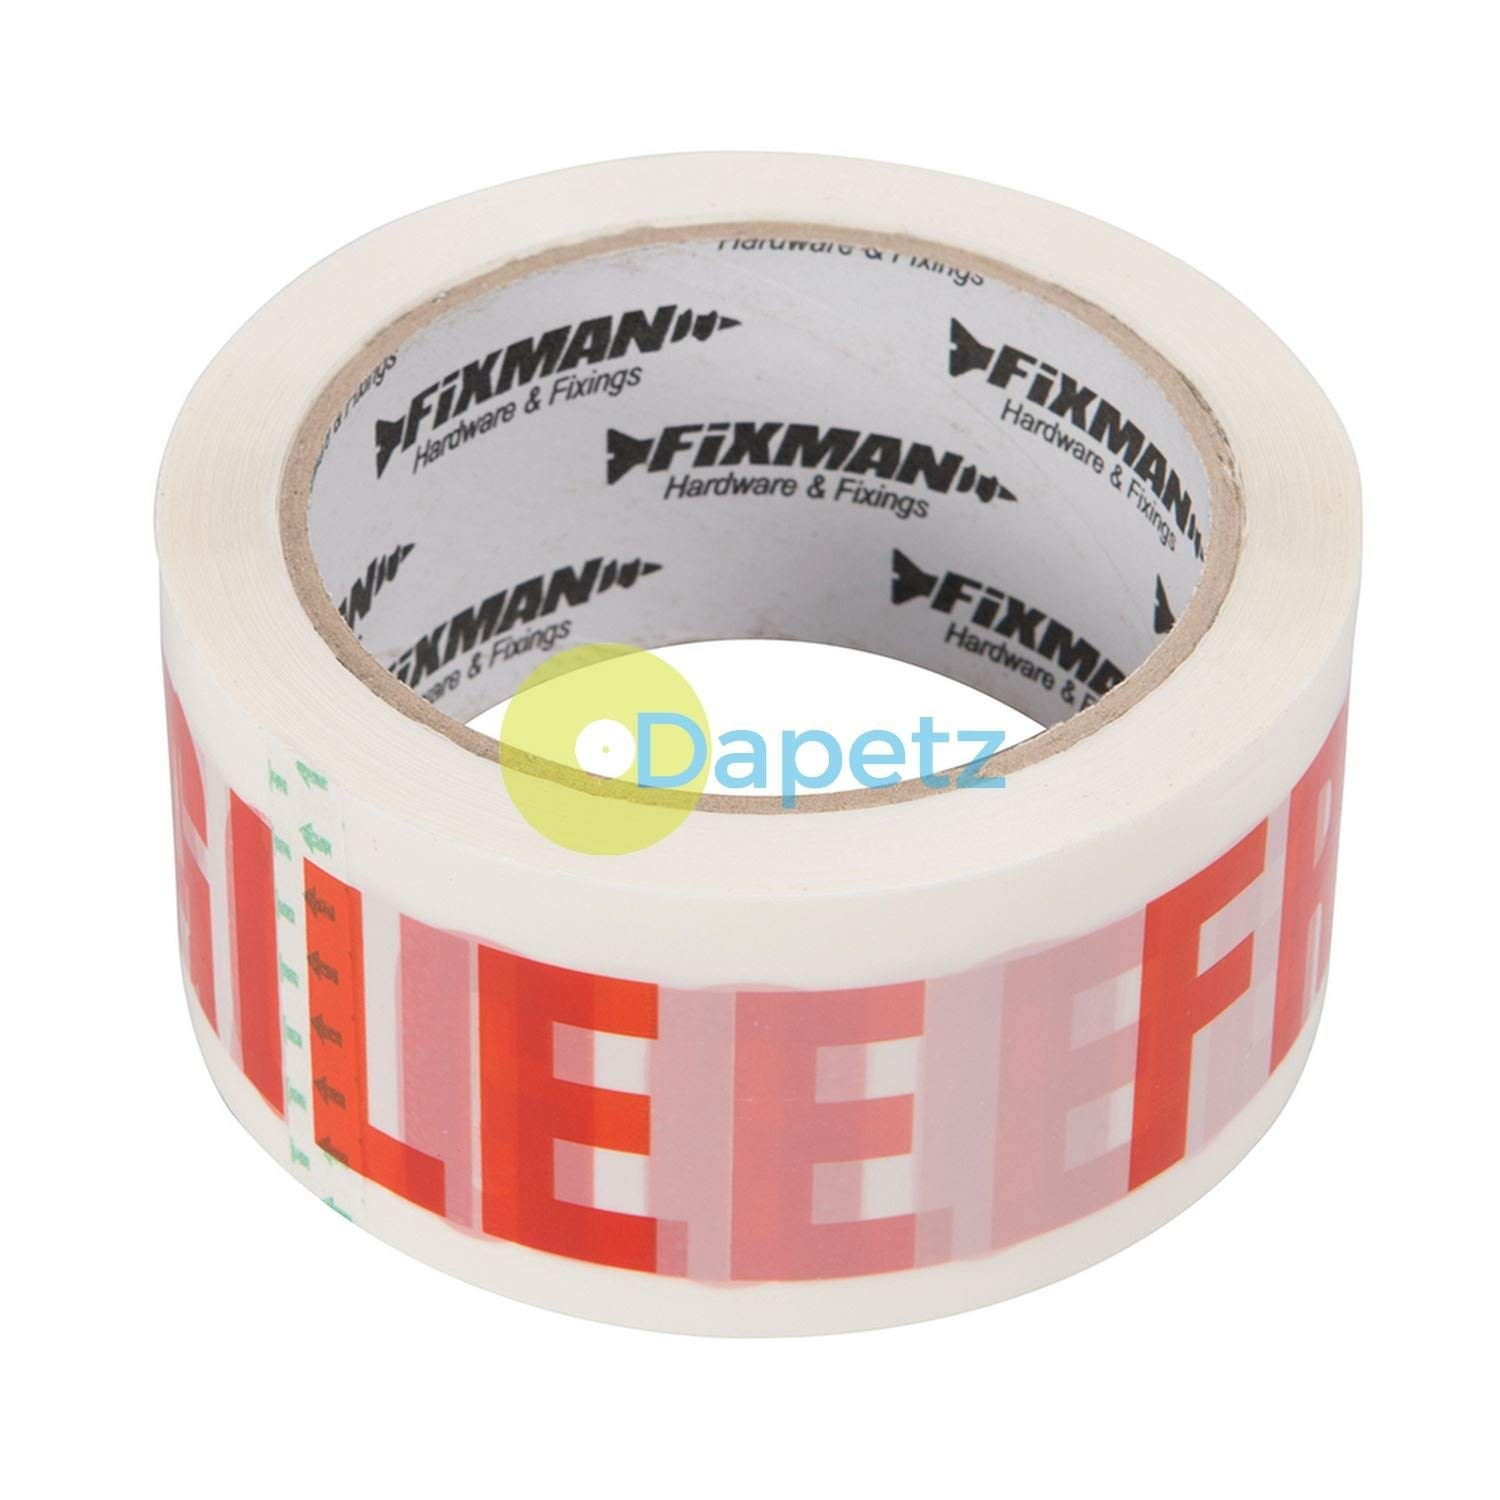 Dapetz /® Packing Tape Handle with Care 48mm X 66M Biaxially-Oriented Polypropylene Film